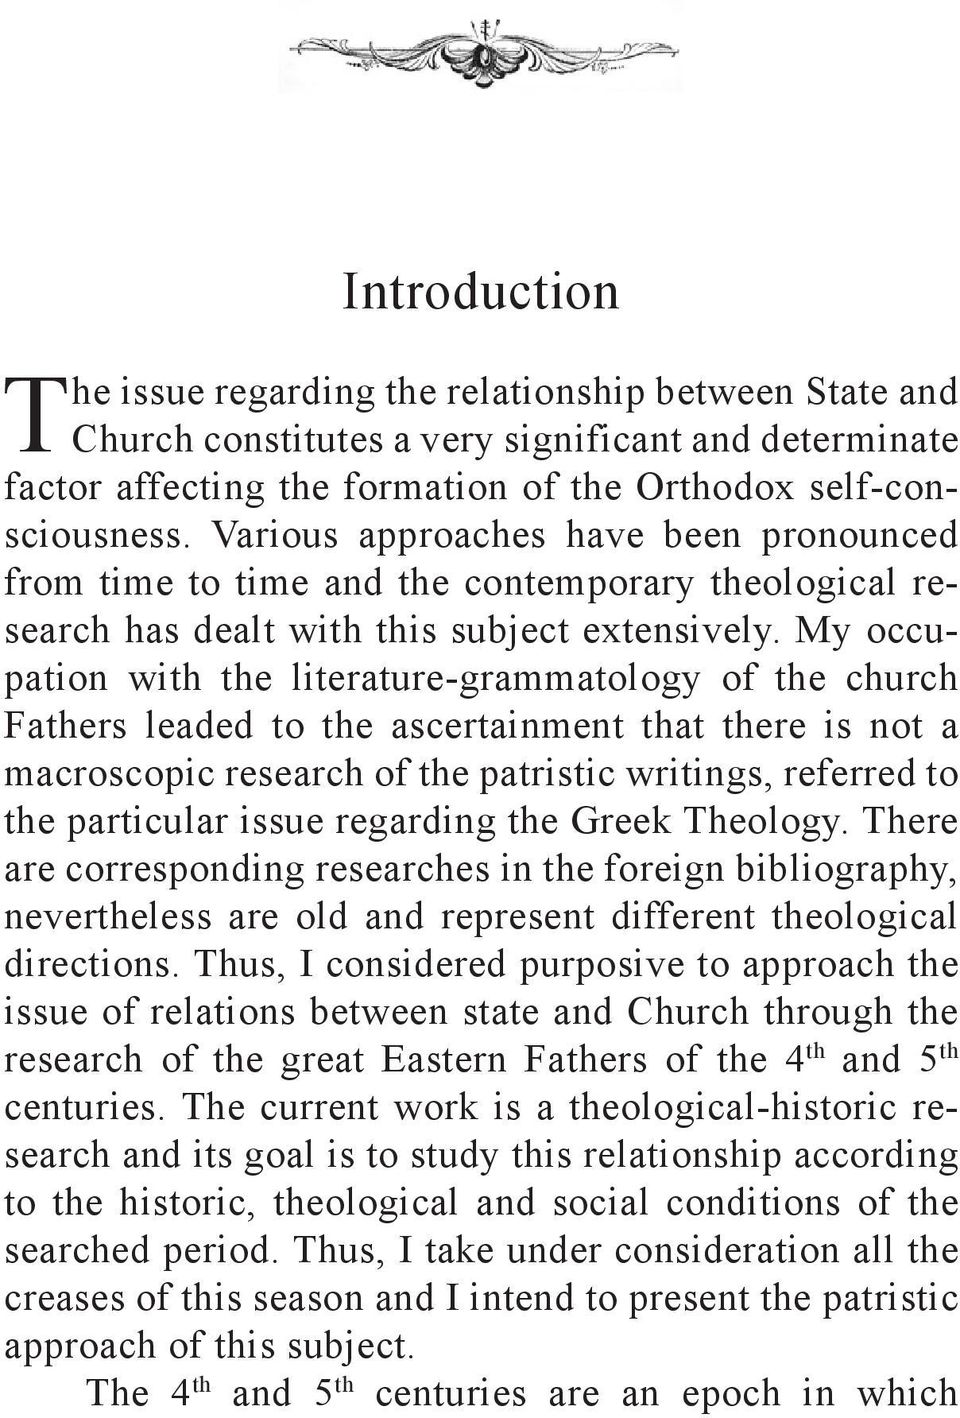 My occupation with the literature-grammatology of the church Fathers leaded to the ascertainment that there is not a macroscopic research of the patristic writings, referred to the particular issue